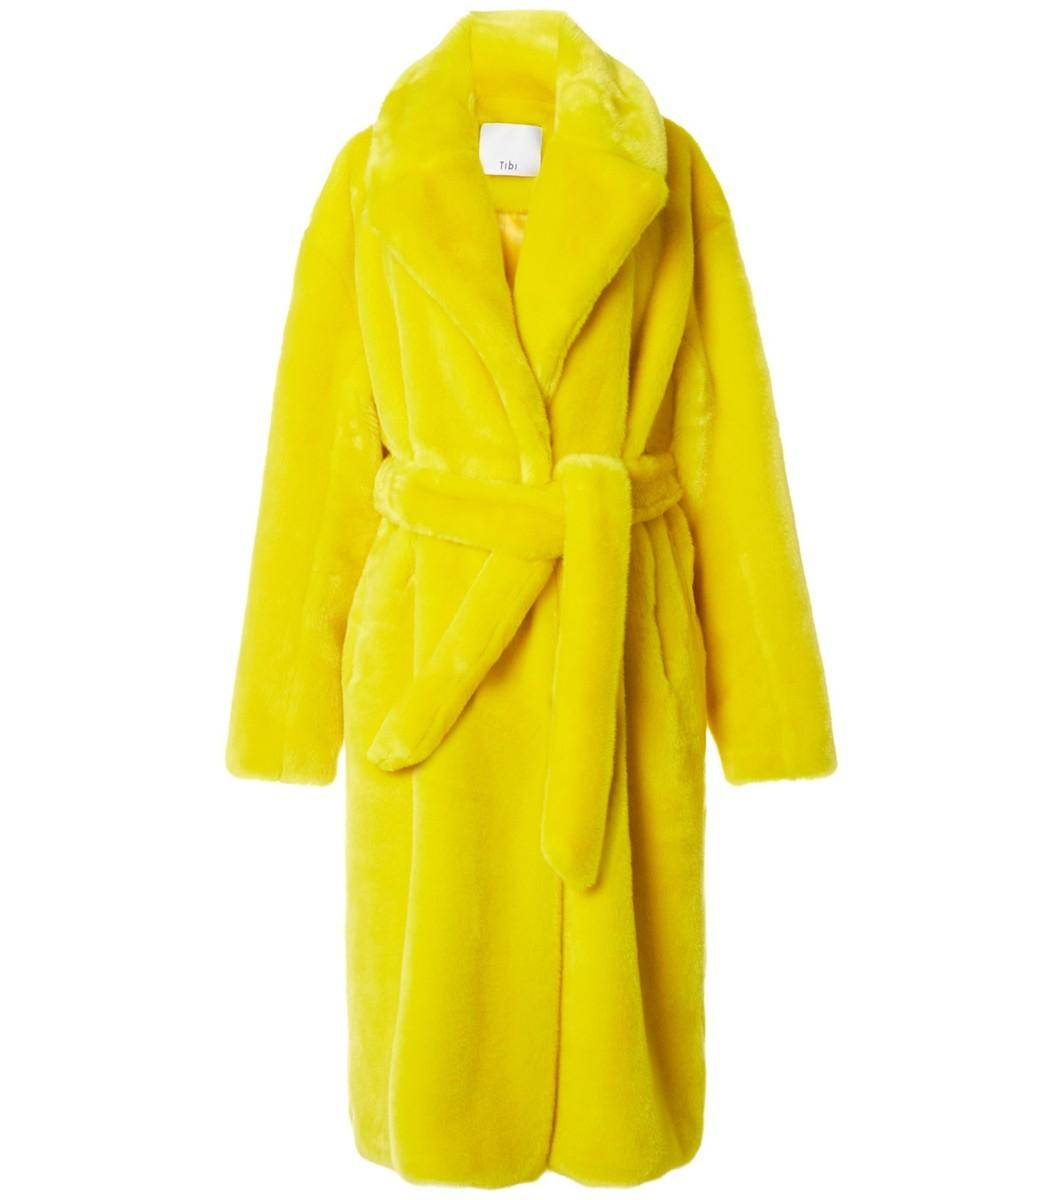 6476a9c7900a Tibi Yellow Luxe Faux Fur Oversized Trench In Chartreuse